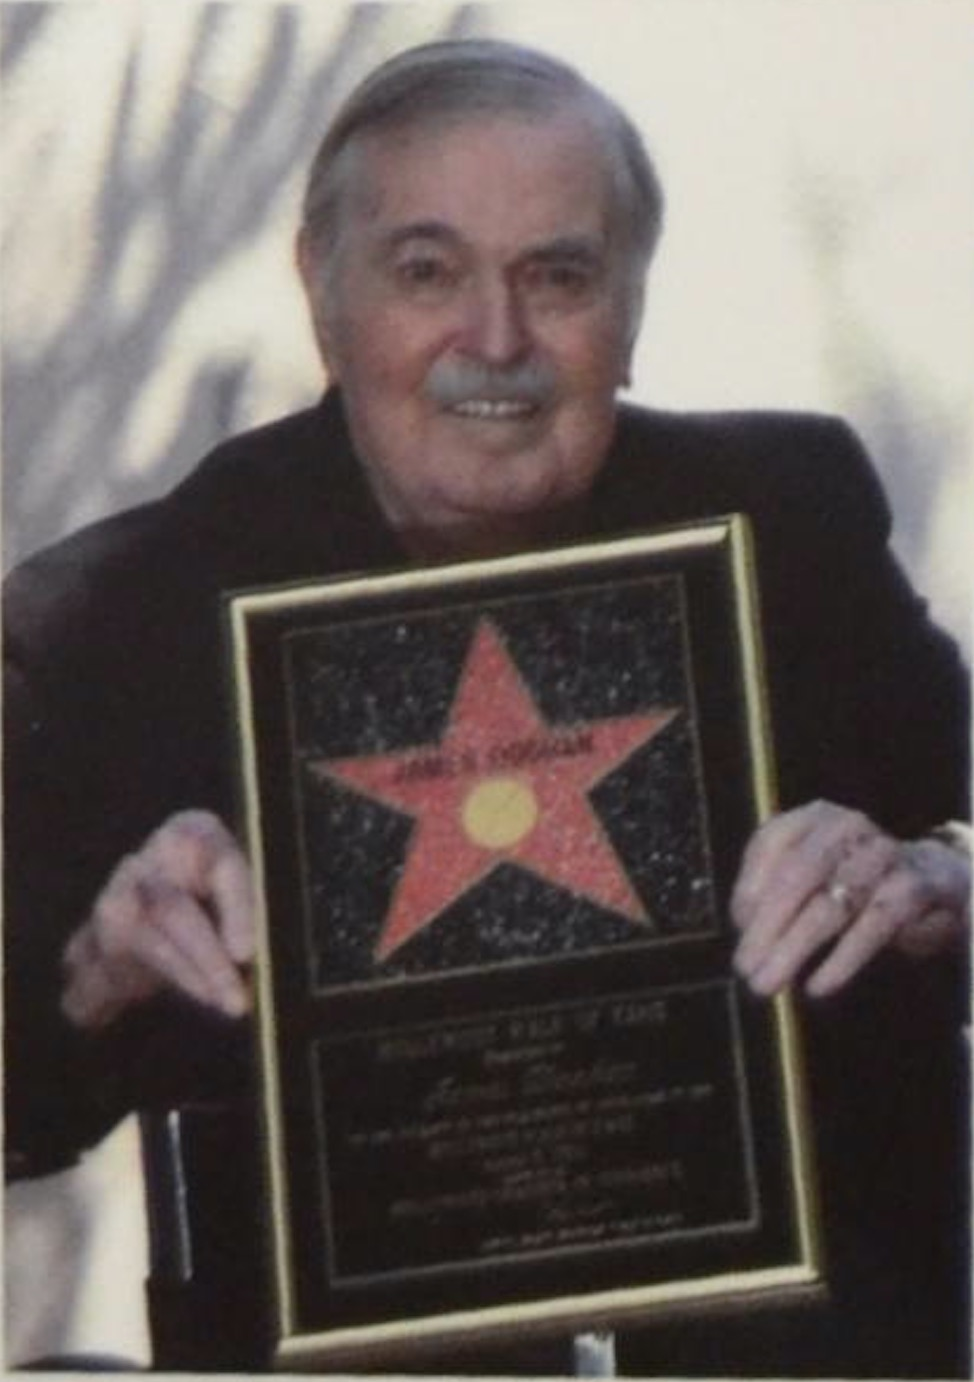 James Doohan & Hollywood Star